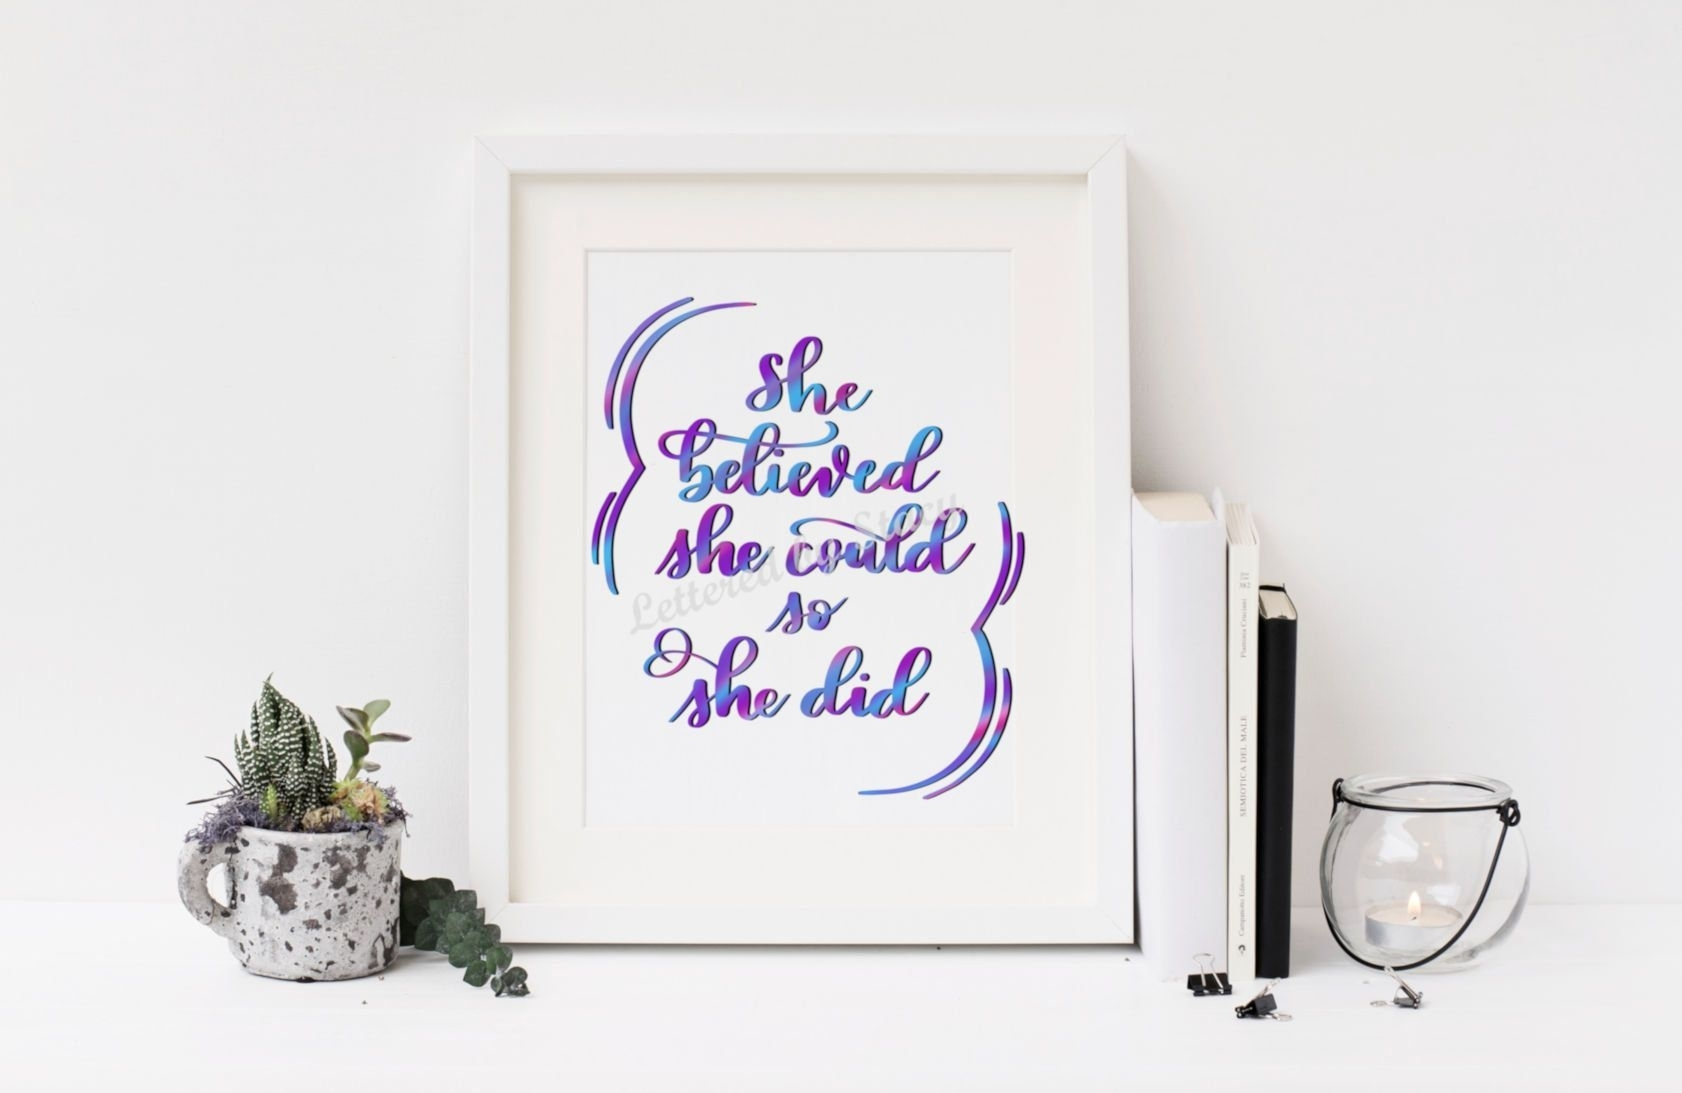 She Believed She Could So She Did, Digital Print, Wall Art With Best And Newest She Believed She Could So She Did Wall Art (View 18 of 20)